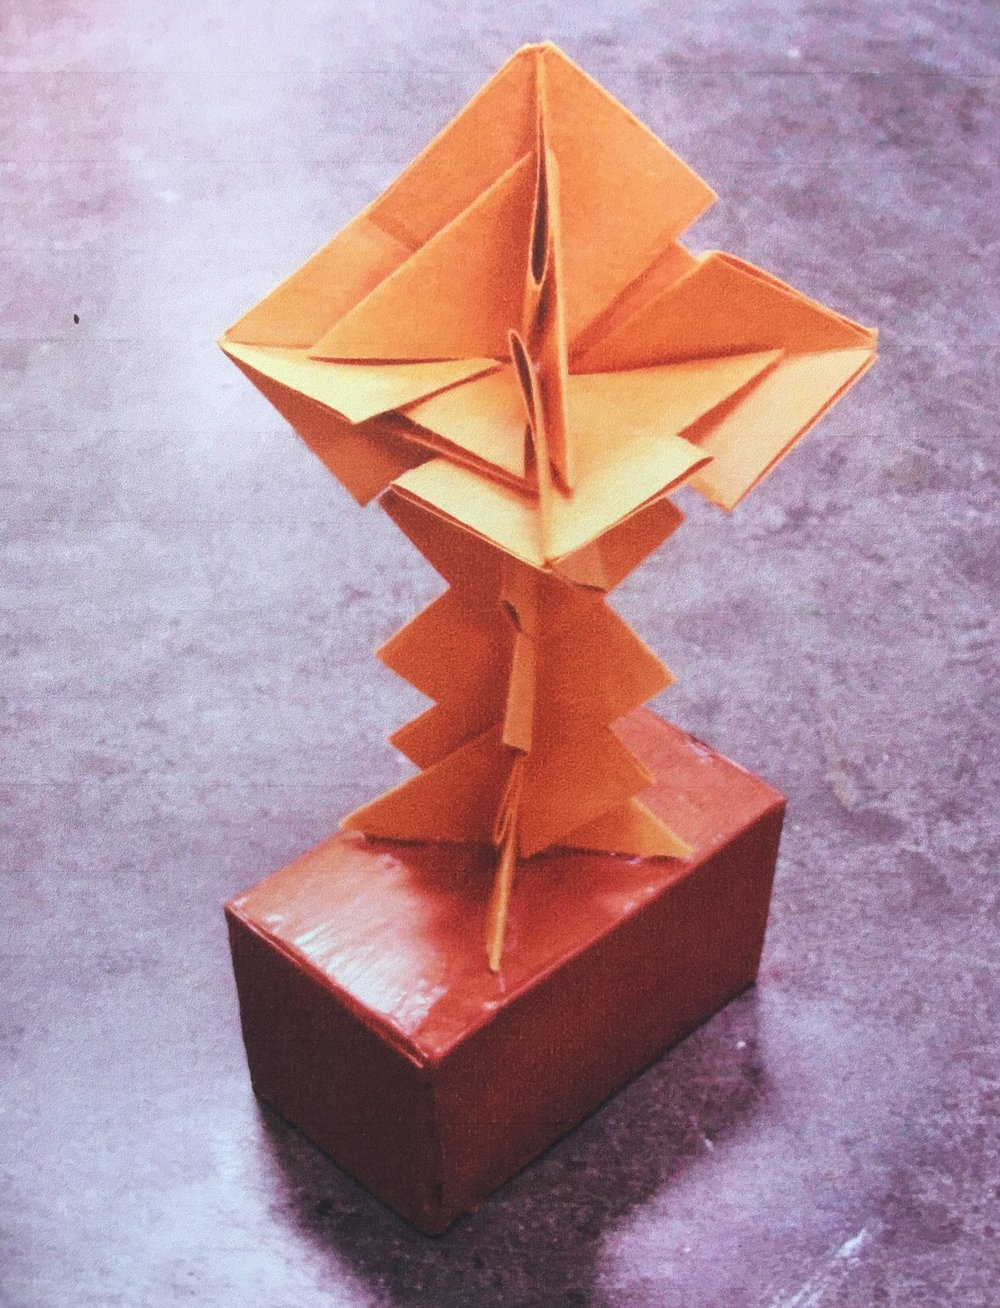 Final Sculpture - Module sculptures look excellent on painted pedestals. Take a box you can paint and glue your finished sculpture on it.You will have a nice display.